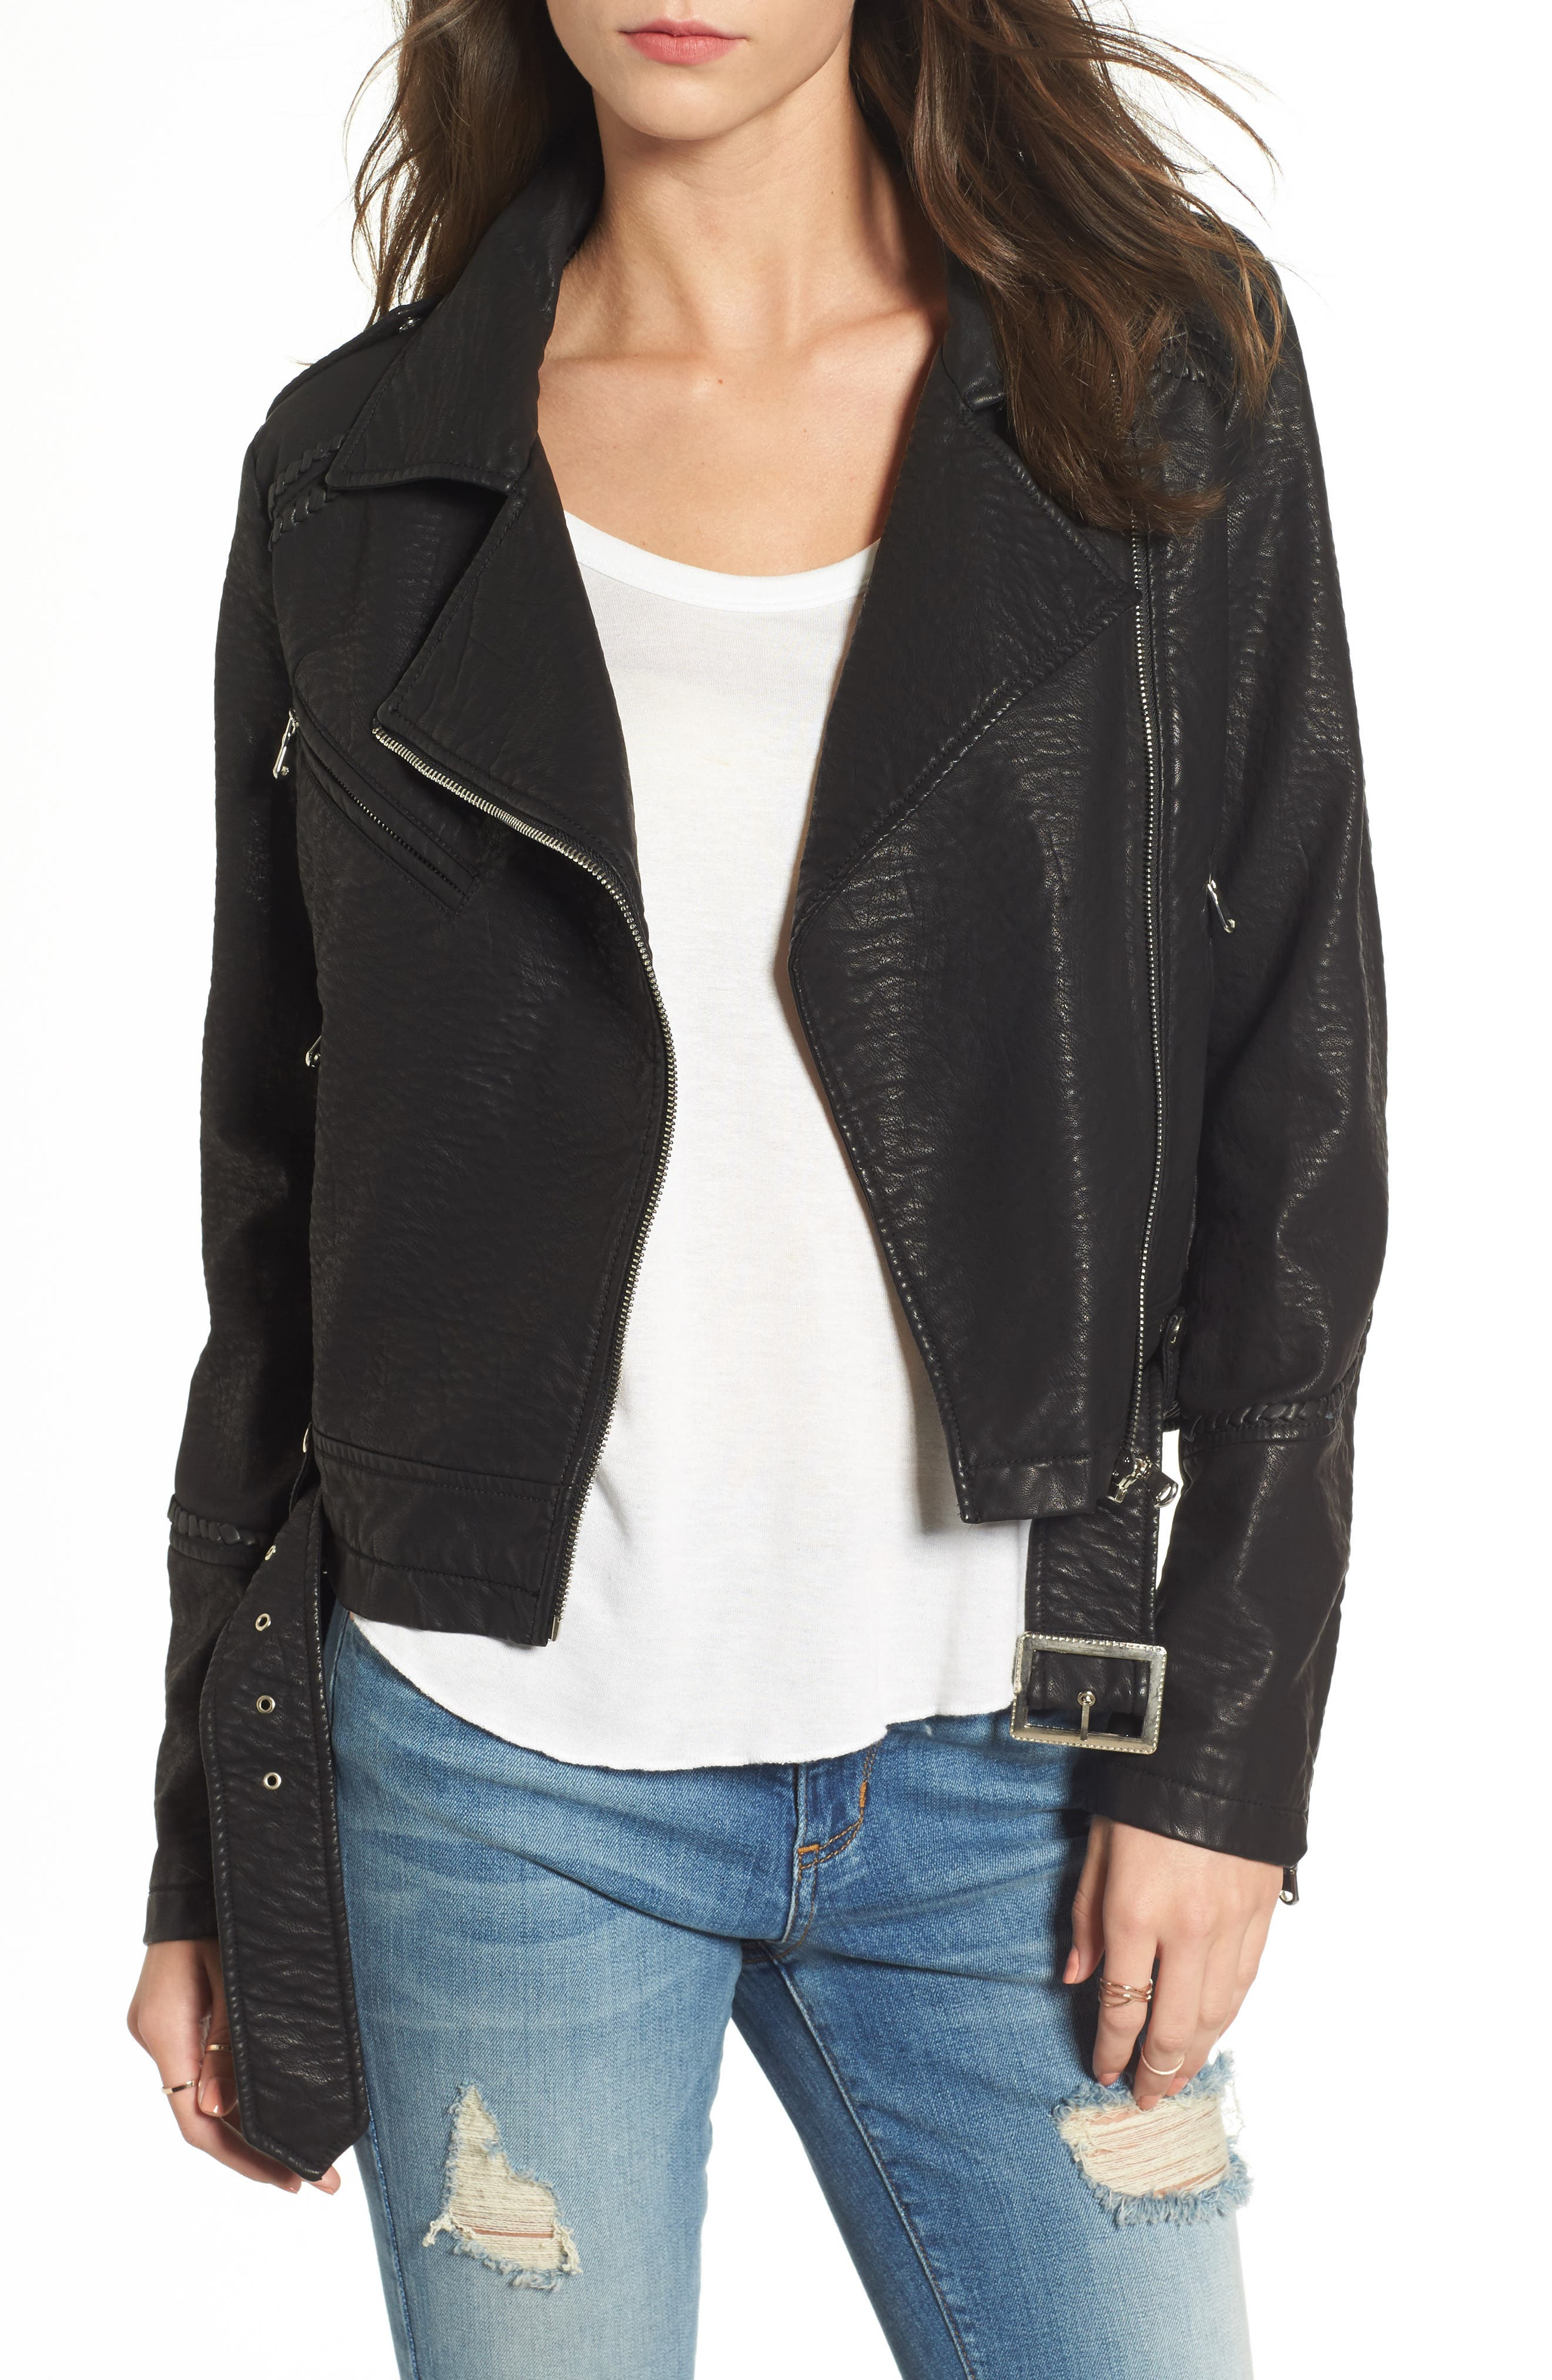 LIRA CLOTHING Furthermore Faux Leather Jacket